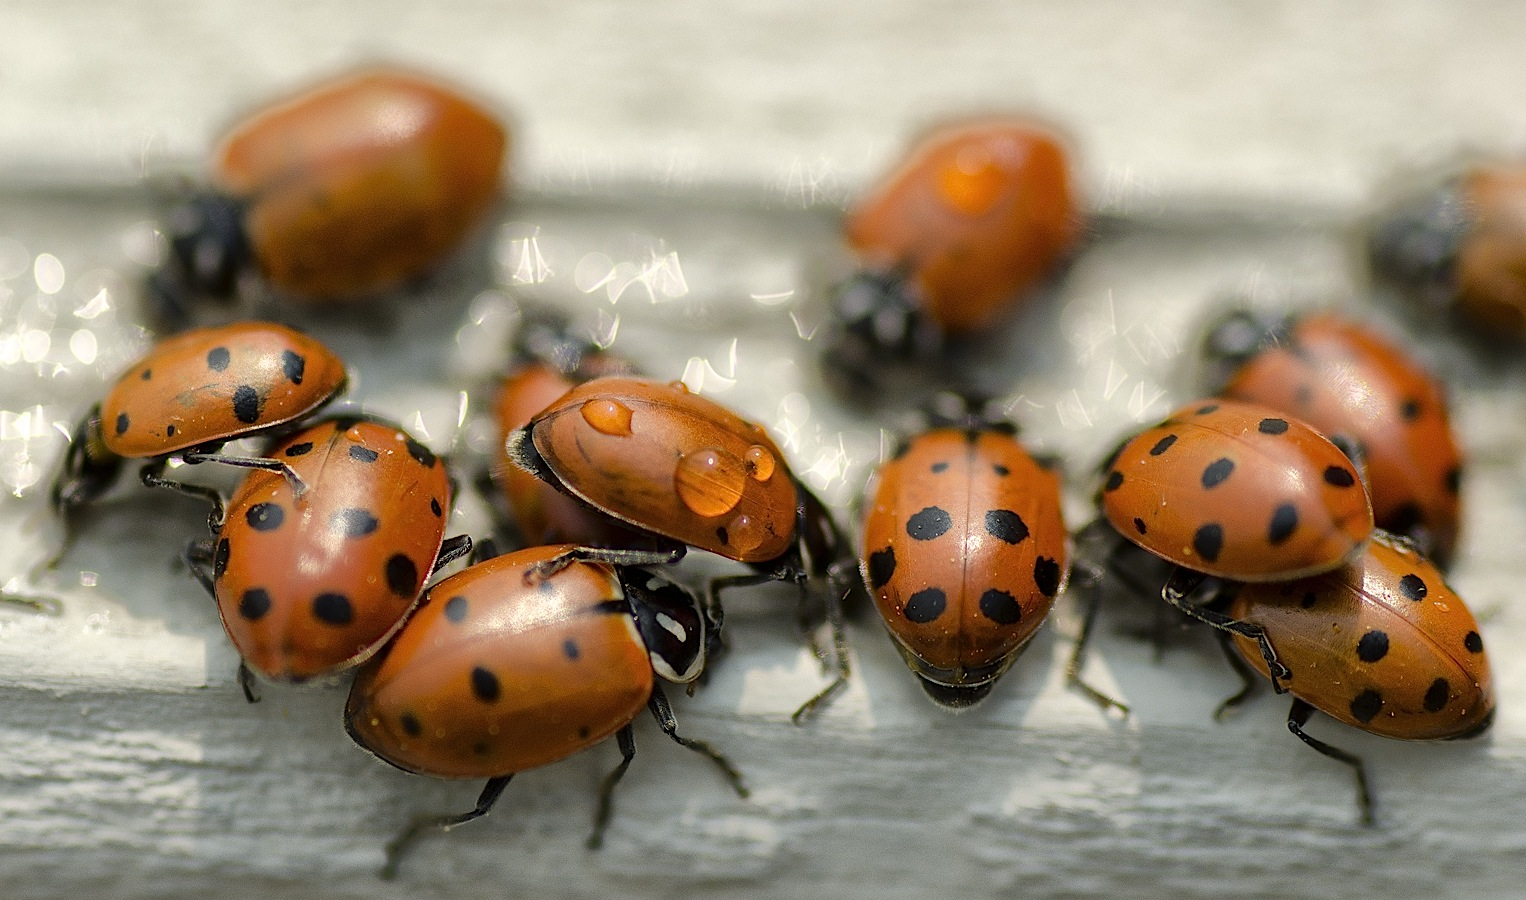 Millions Of Ladybugs Swarming The South, Leaving Behind ...